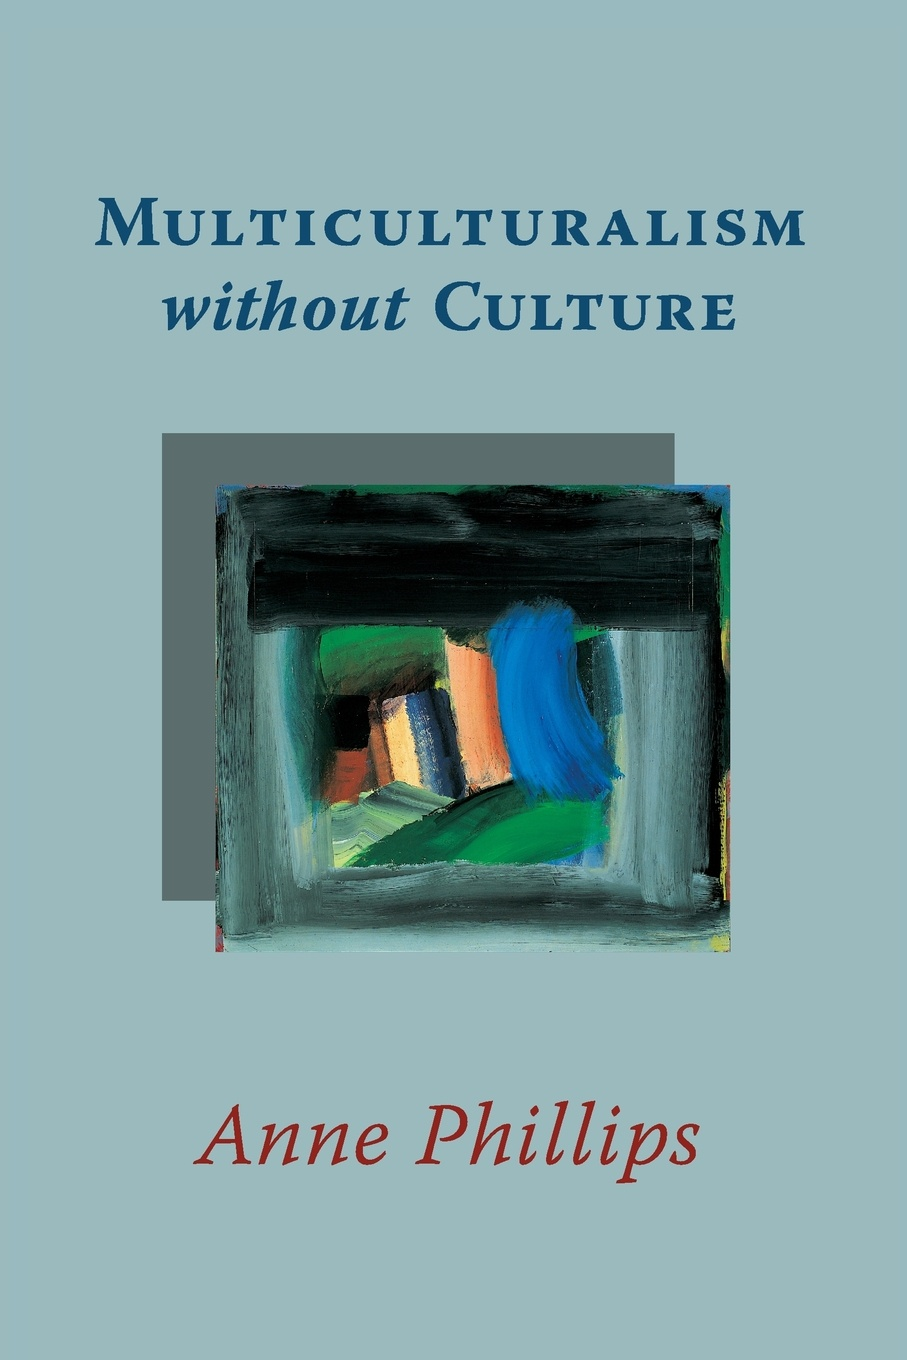 Anne Phillips Multiculturalism without Culture belle harrell multiculturalism must come to a truce hollywood and the perpetual browning of the nation